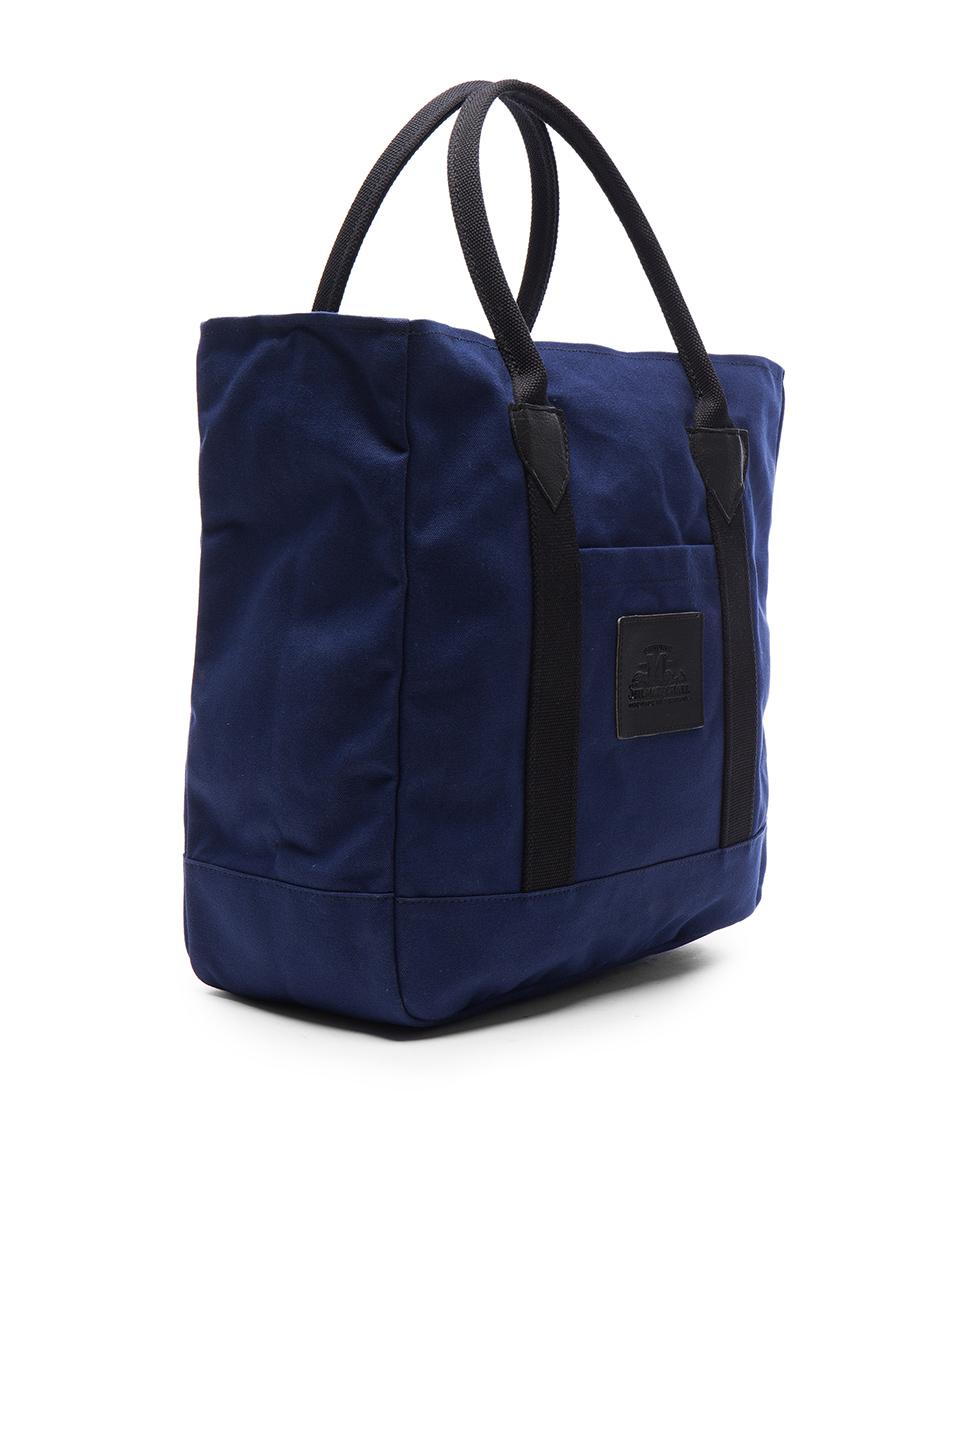 Junya Watanabe Cotton Canvas Seil Marschall Tote in Navy (Blue)